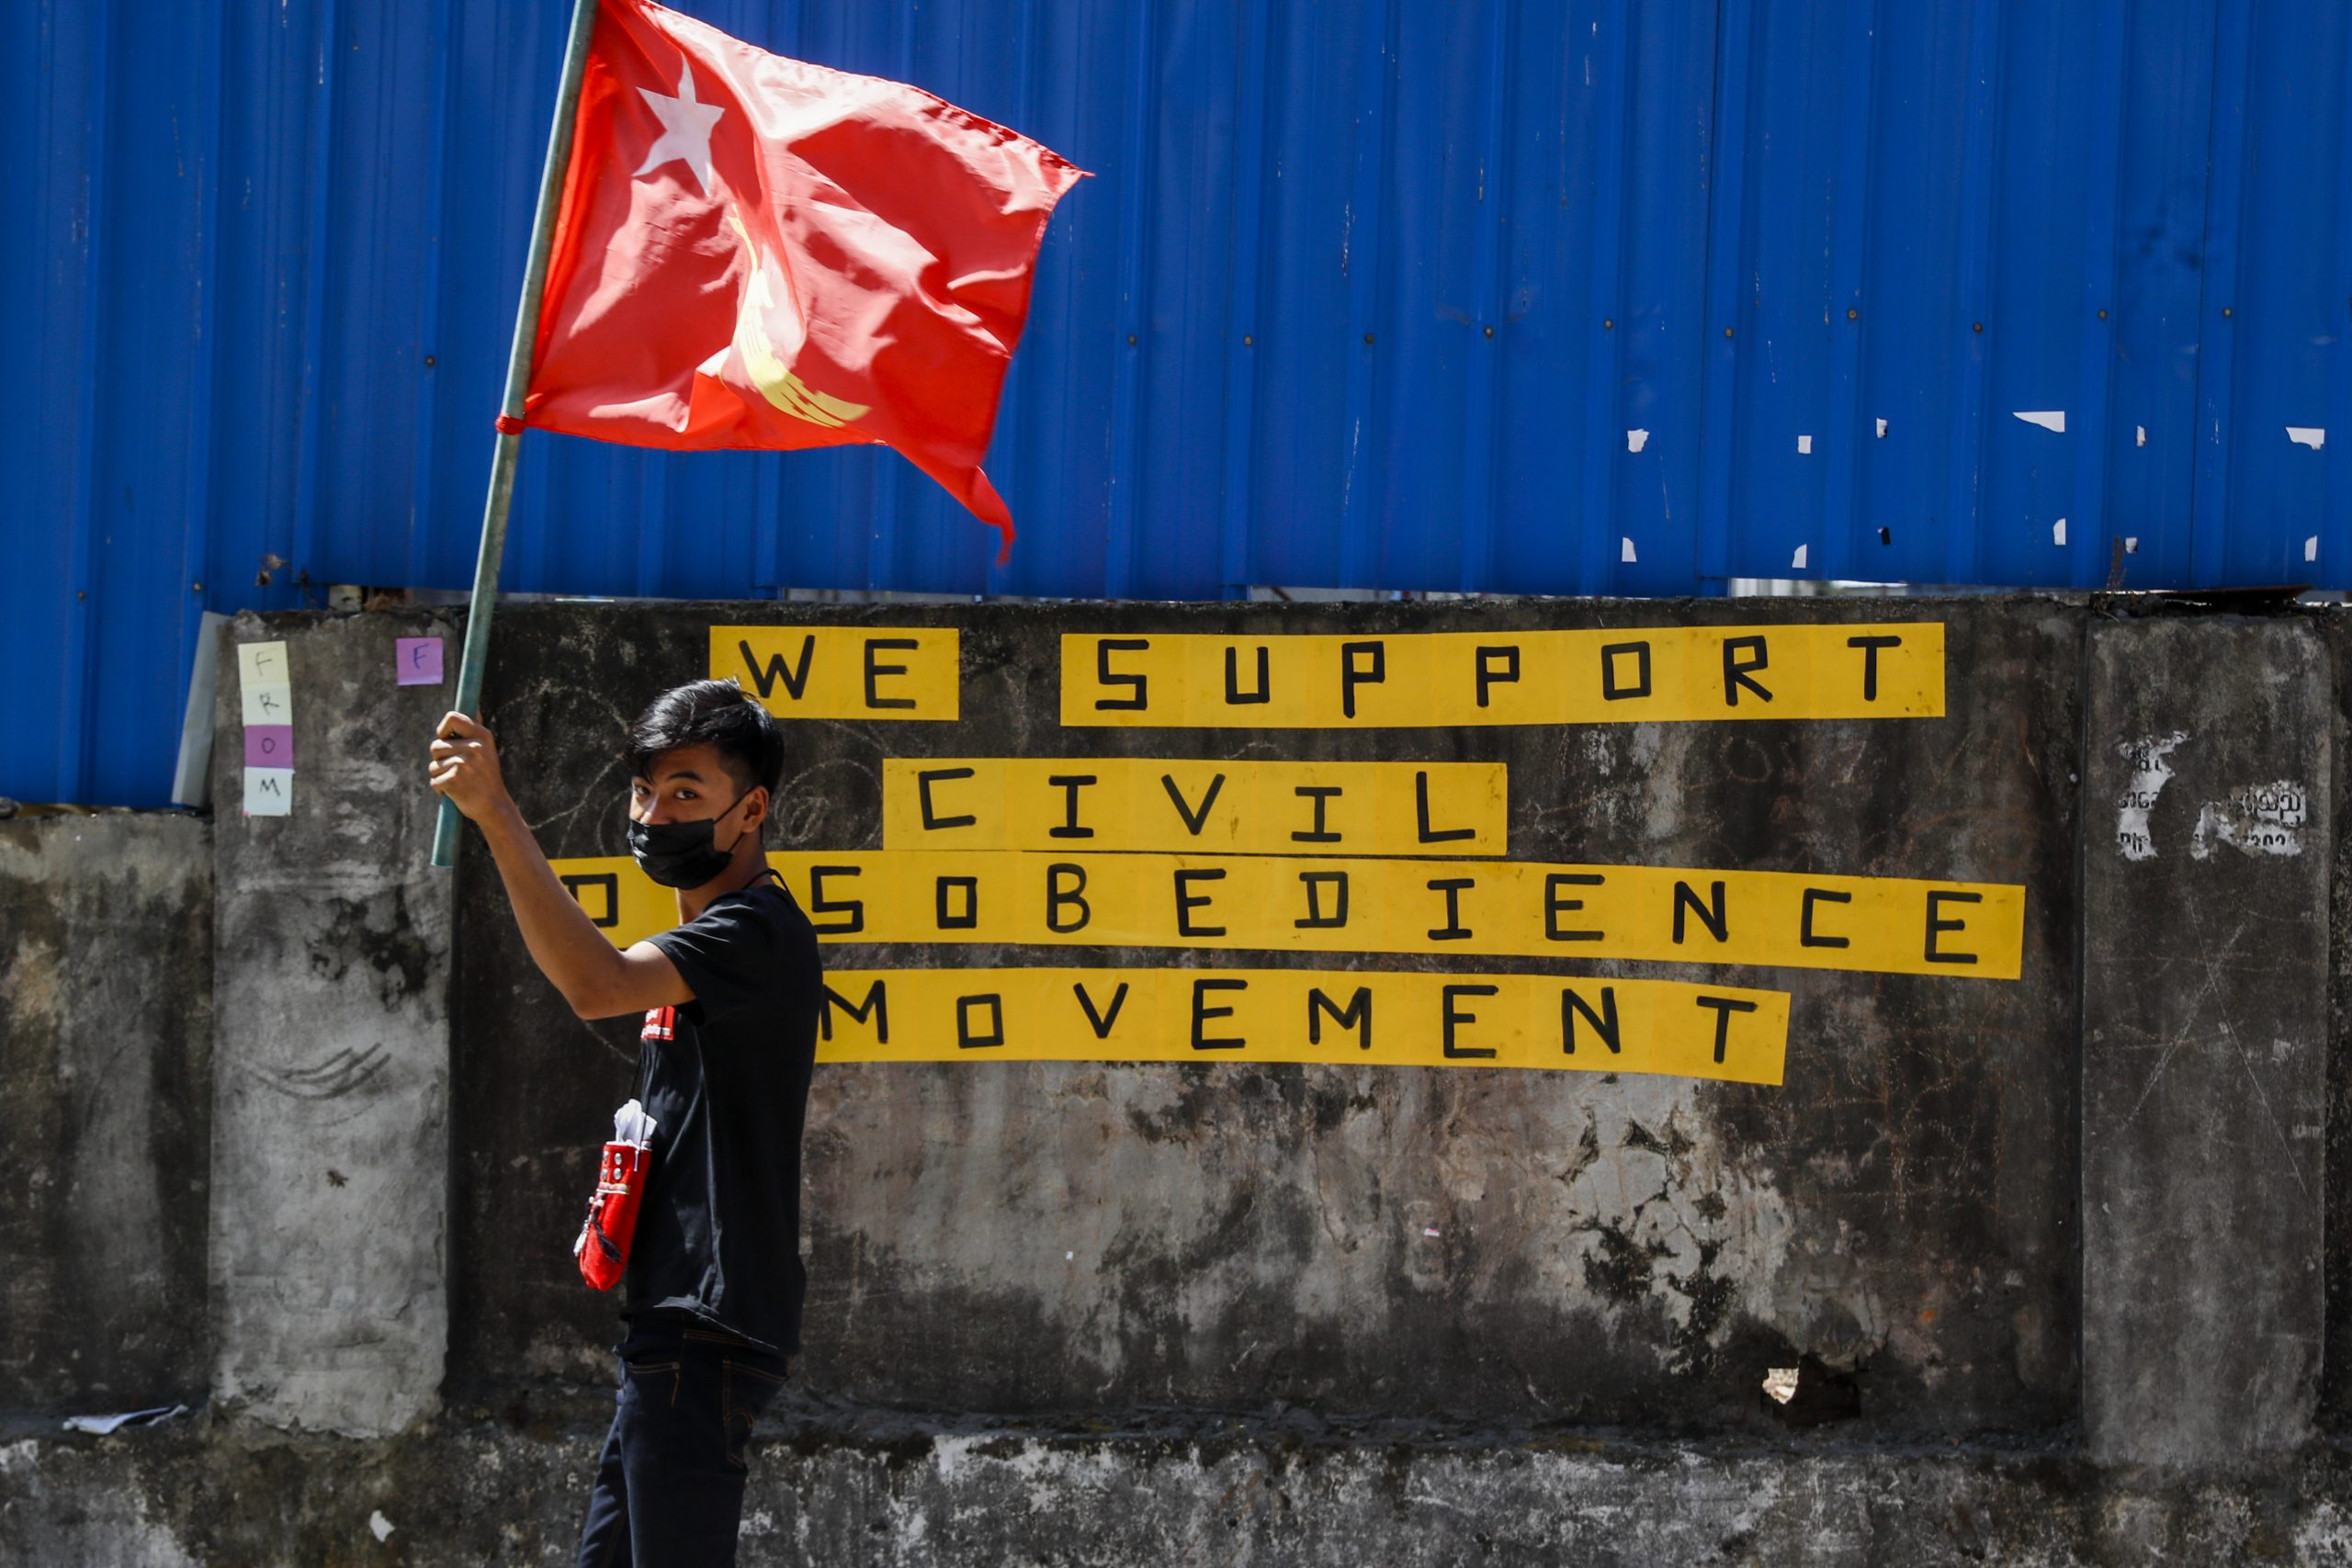 A protester waves a National League for Democracy flag in Yangon. (Frontier)